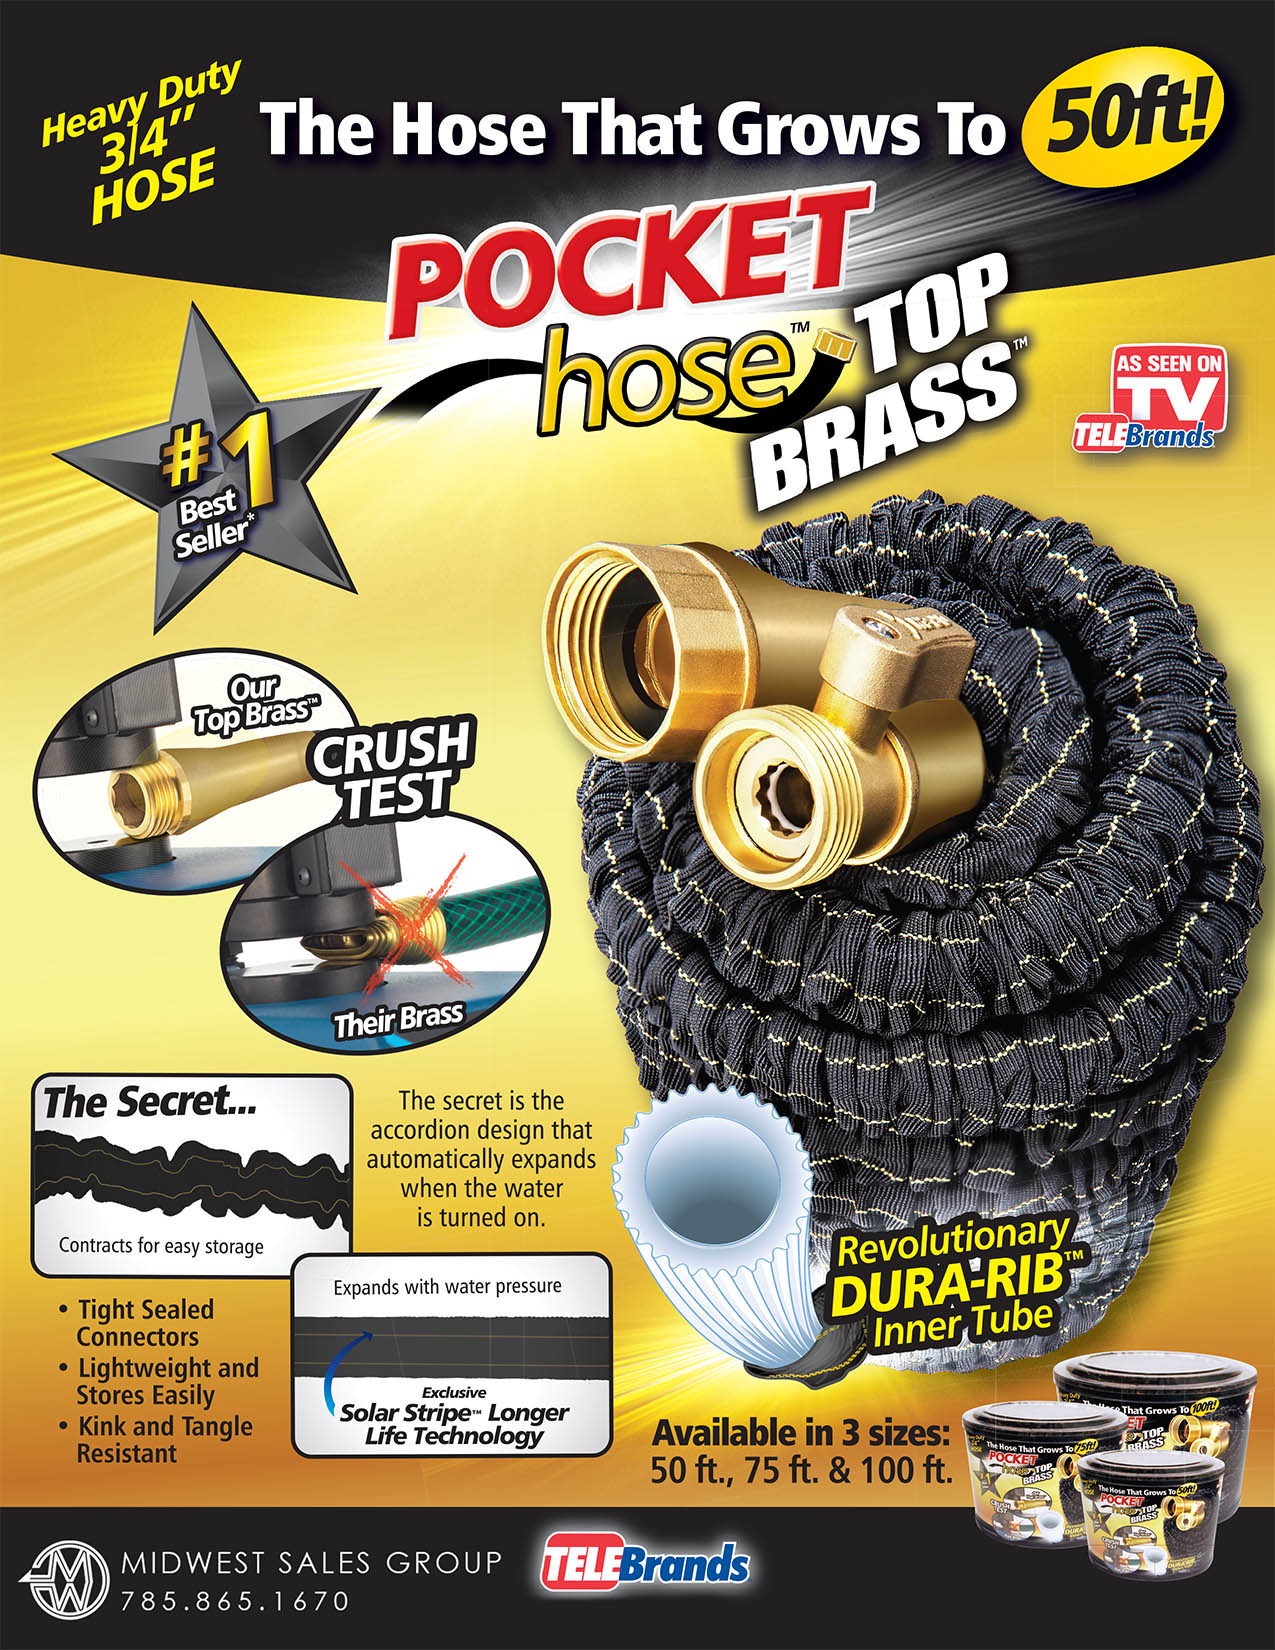 pocket hose top brass sell sheet r3-3 SIZES embed